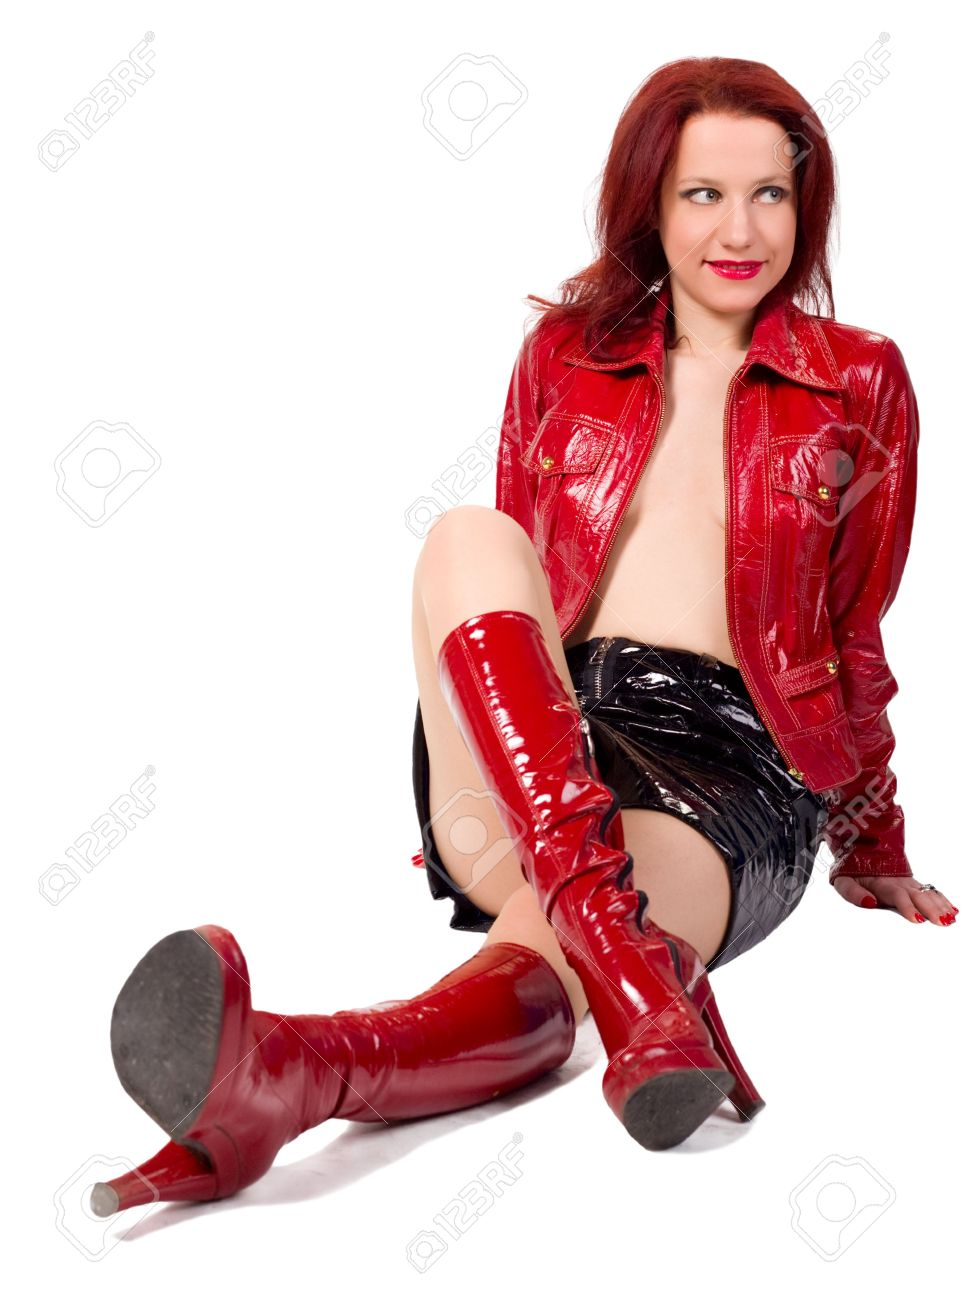 Woman Dressed In A Red Leather Jacket, Black Short Skirt And ...